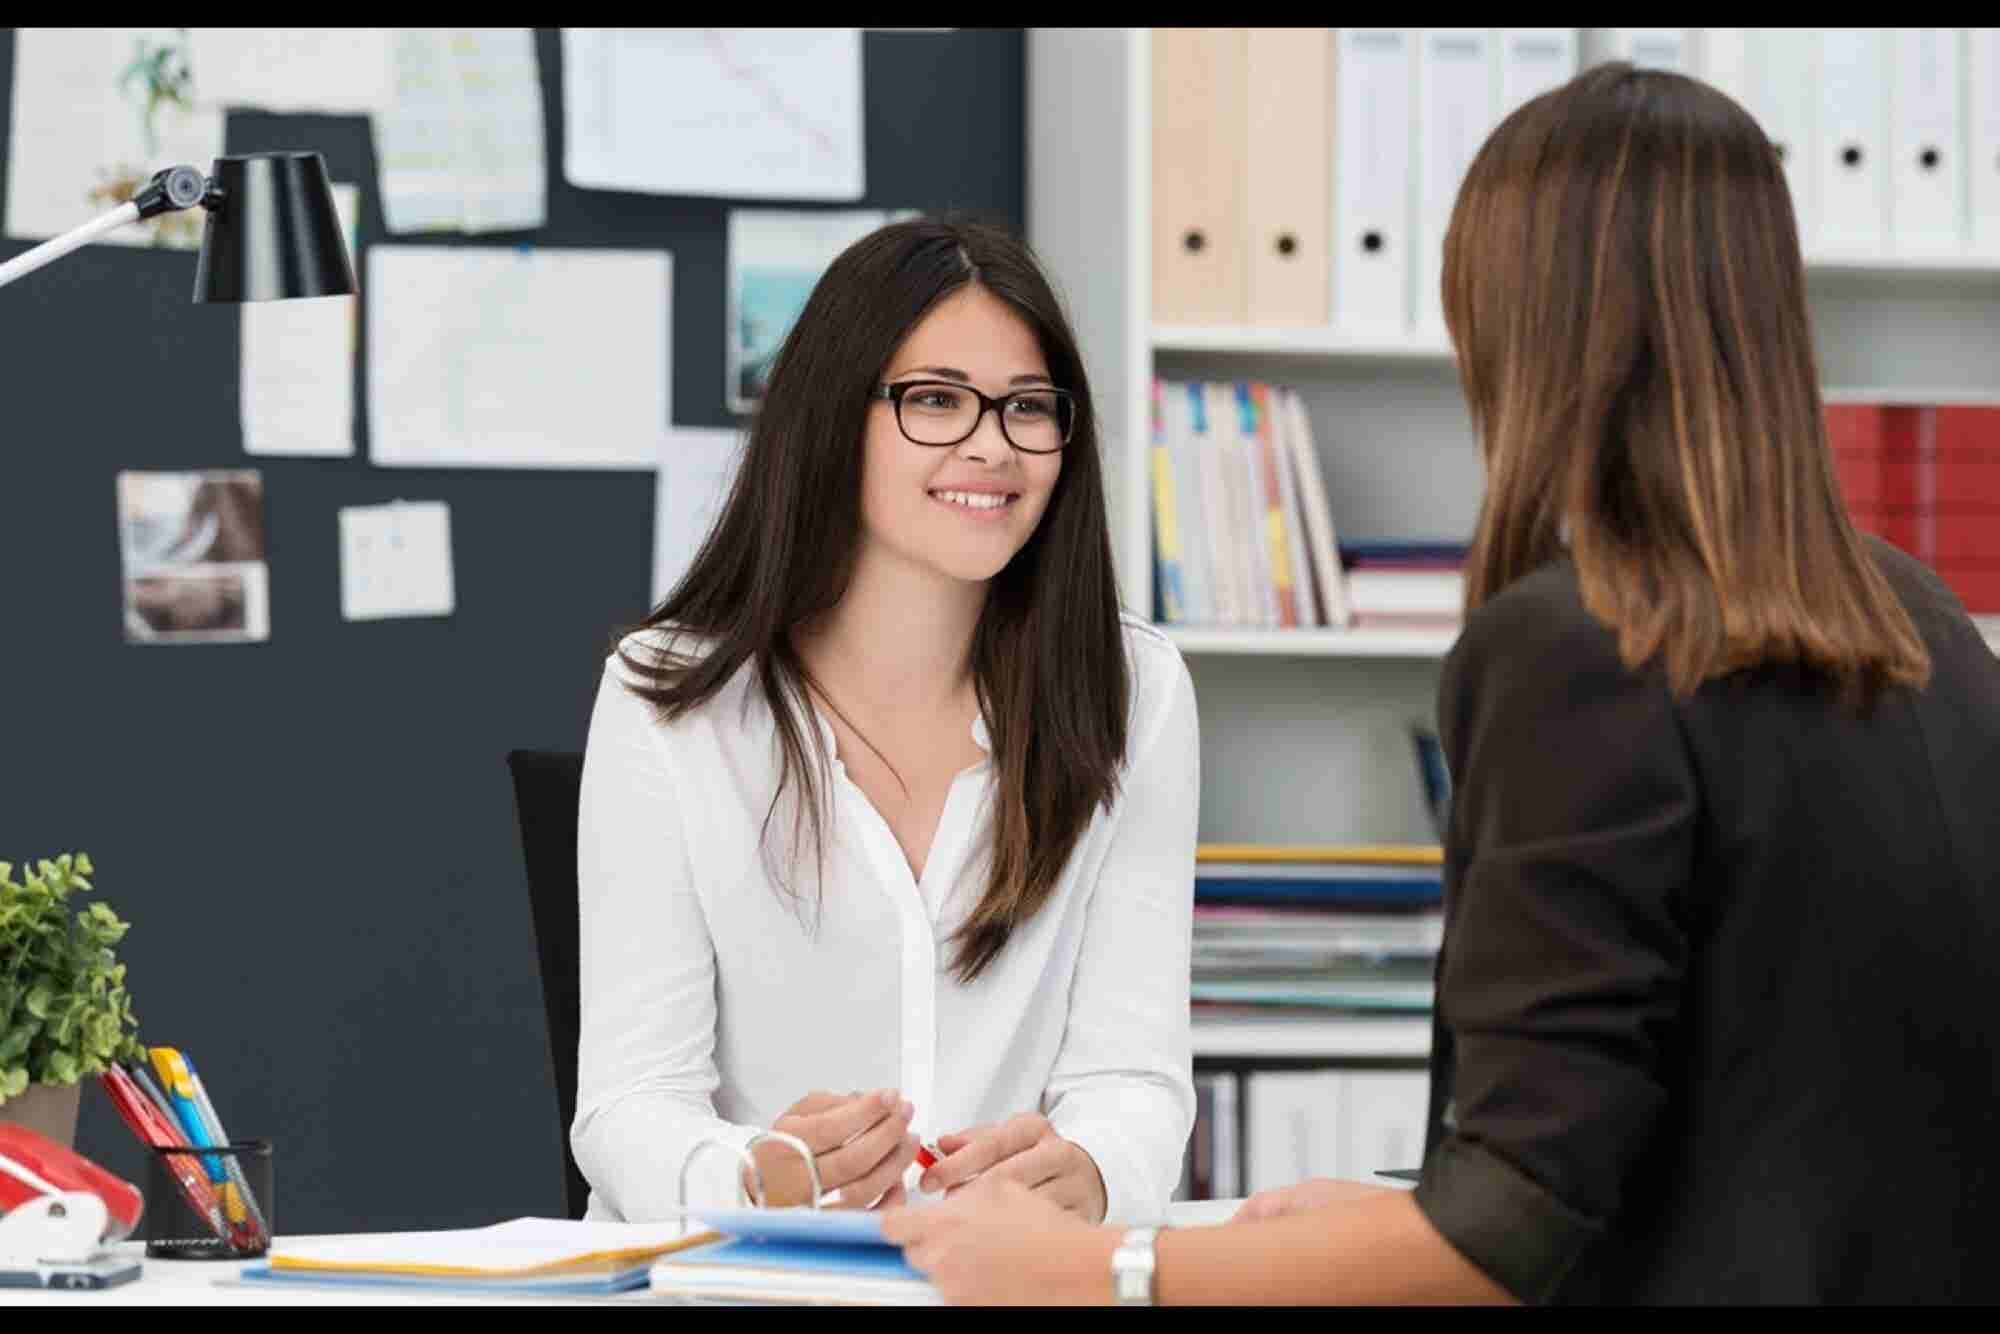 Qualities Your Next Mentor Should Have